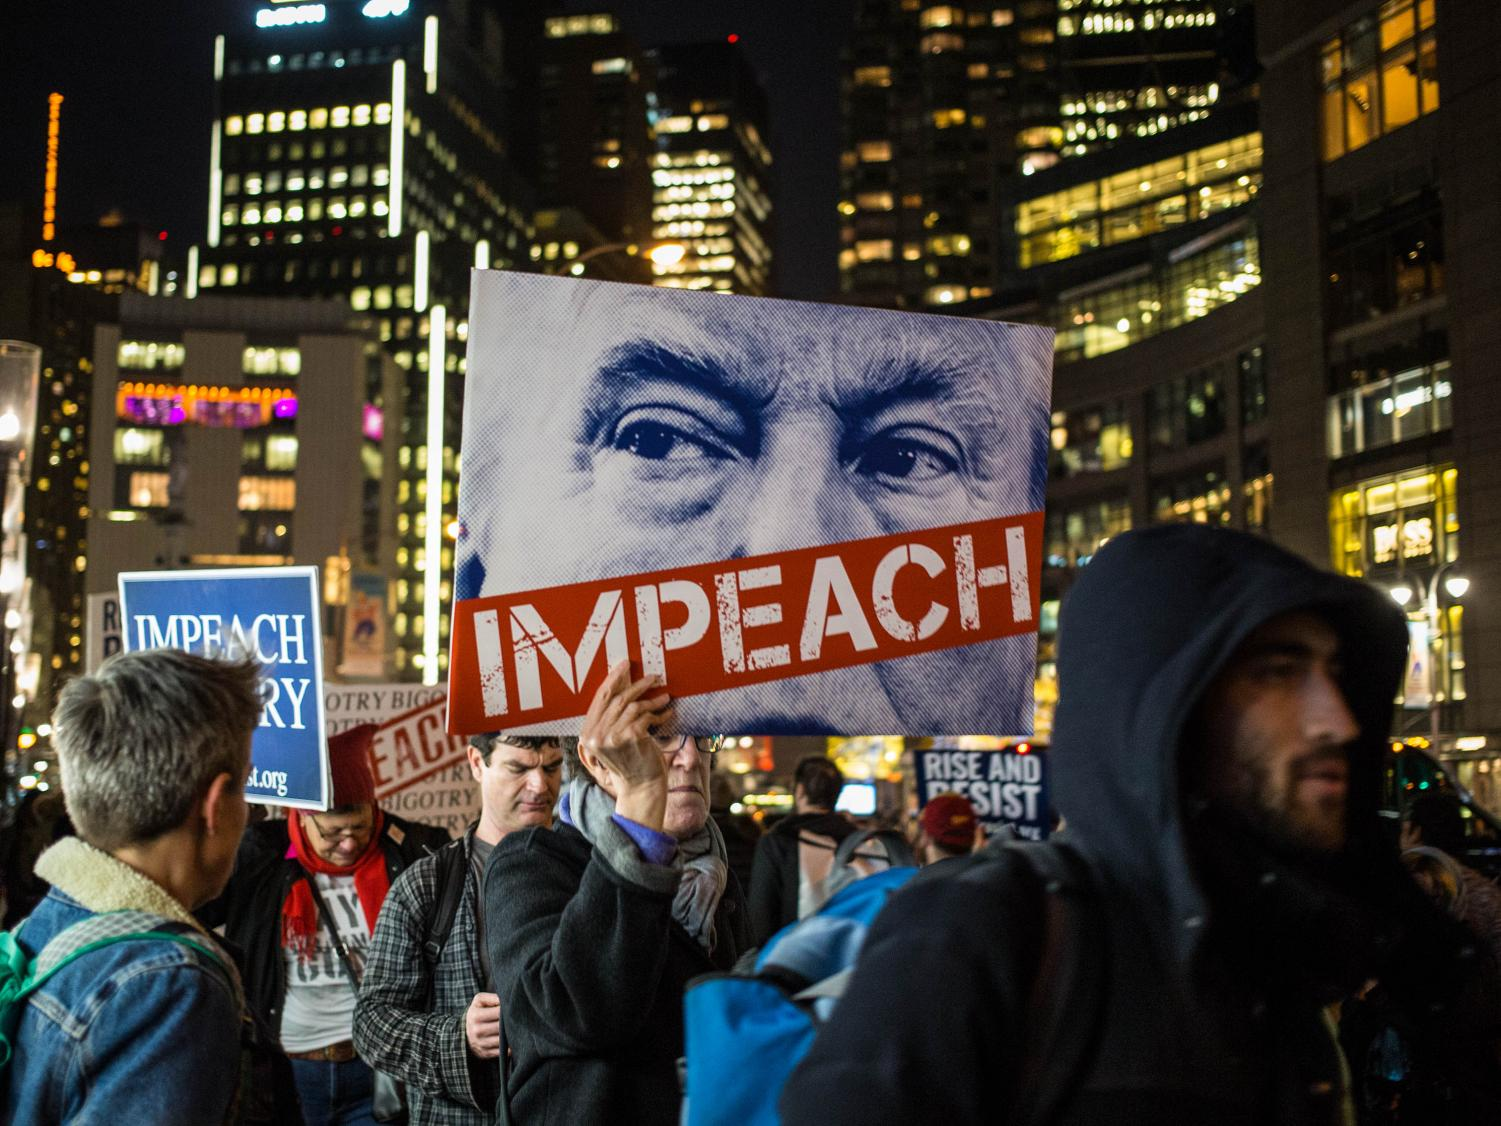 This is not the first time Trump has dealt with impeachment talk. Formal efforts to impeach Trump were initiated in 2017 by House Democrats as well. Creative Commons Photo image: Working Families Party from Creative Commons.